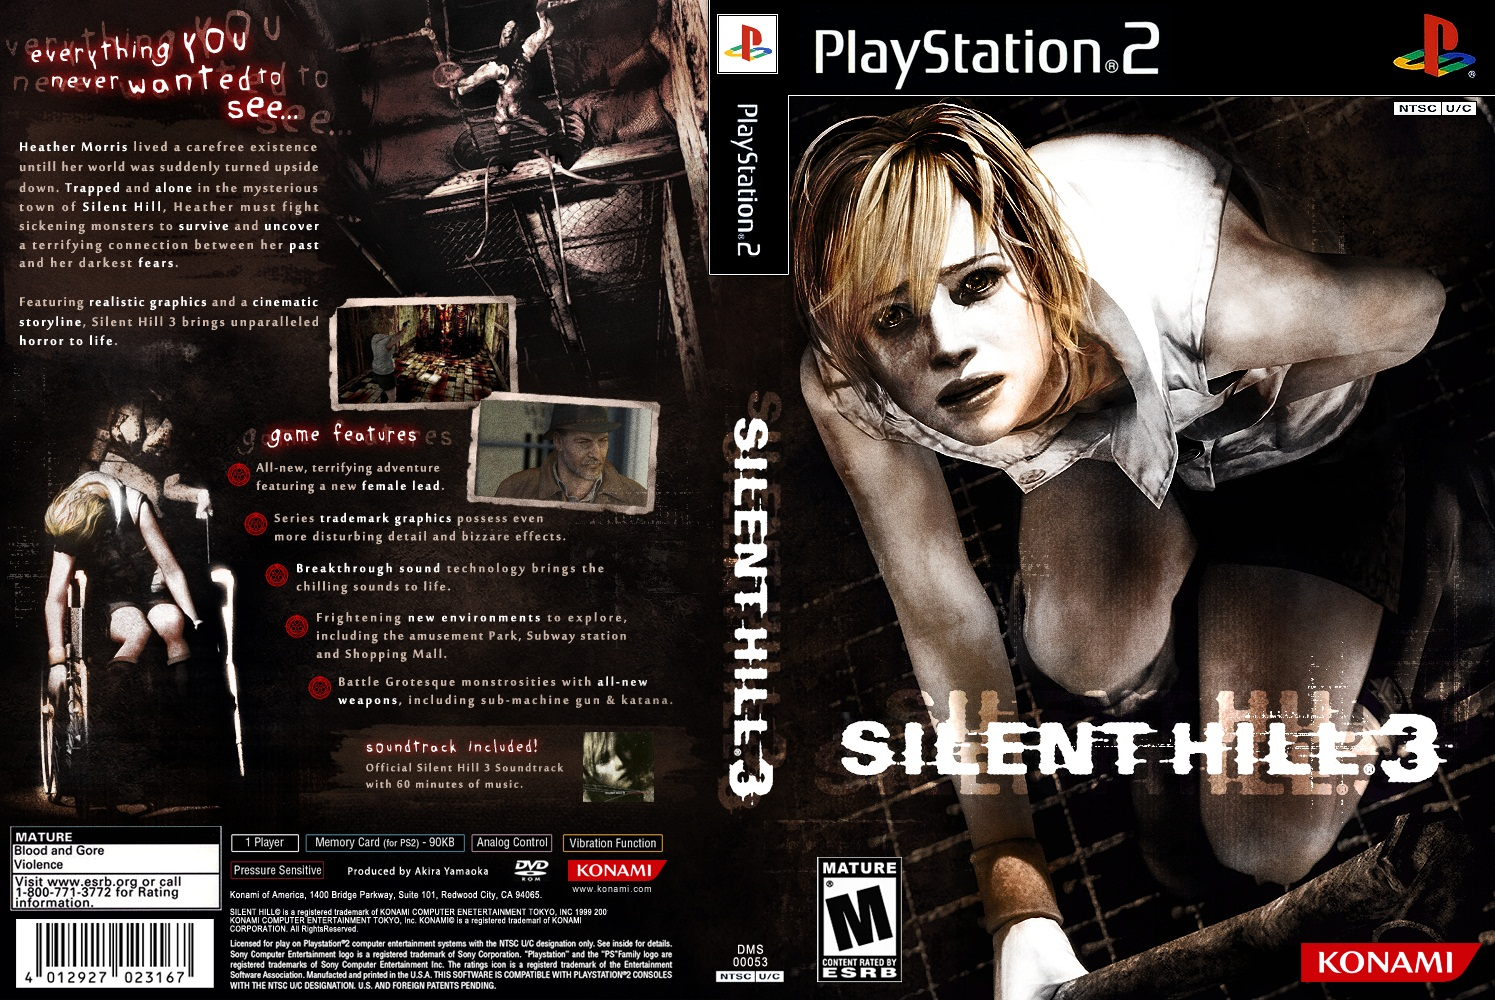 28 Oct You searched for: Silent hill 3 cheats codes ps2 Fou